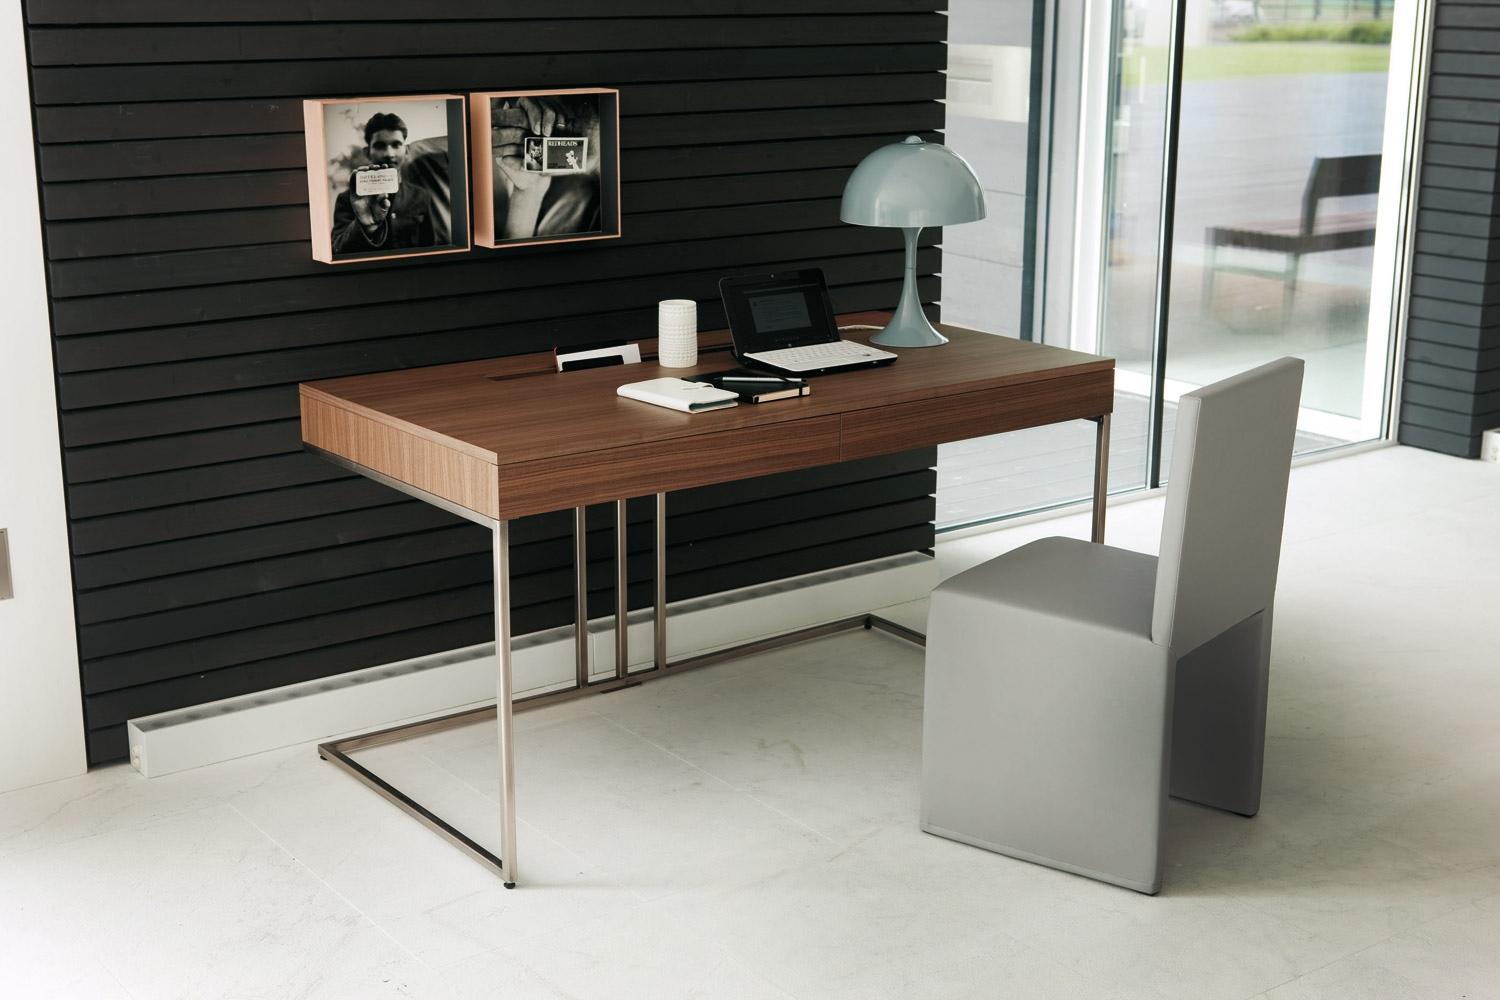 designer office desks. Design Office Desks. Desks Interior Ideas Designer S